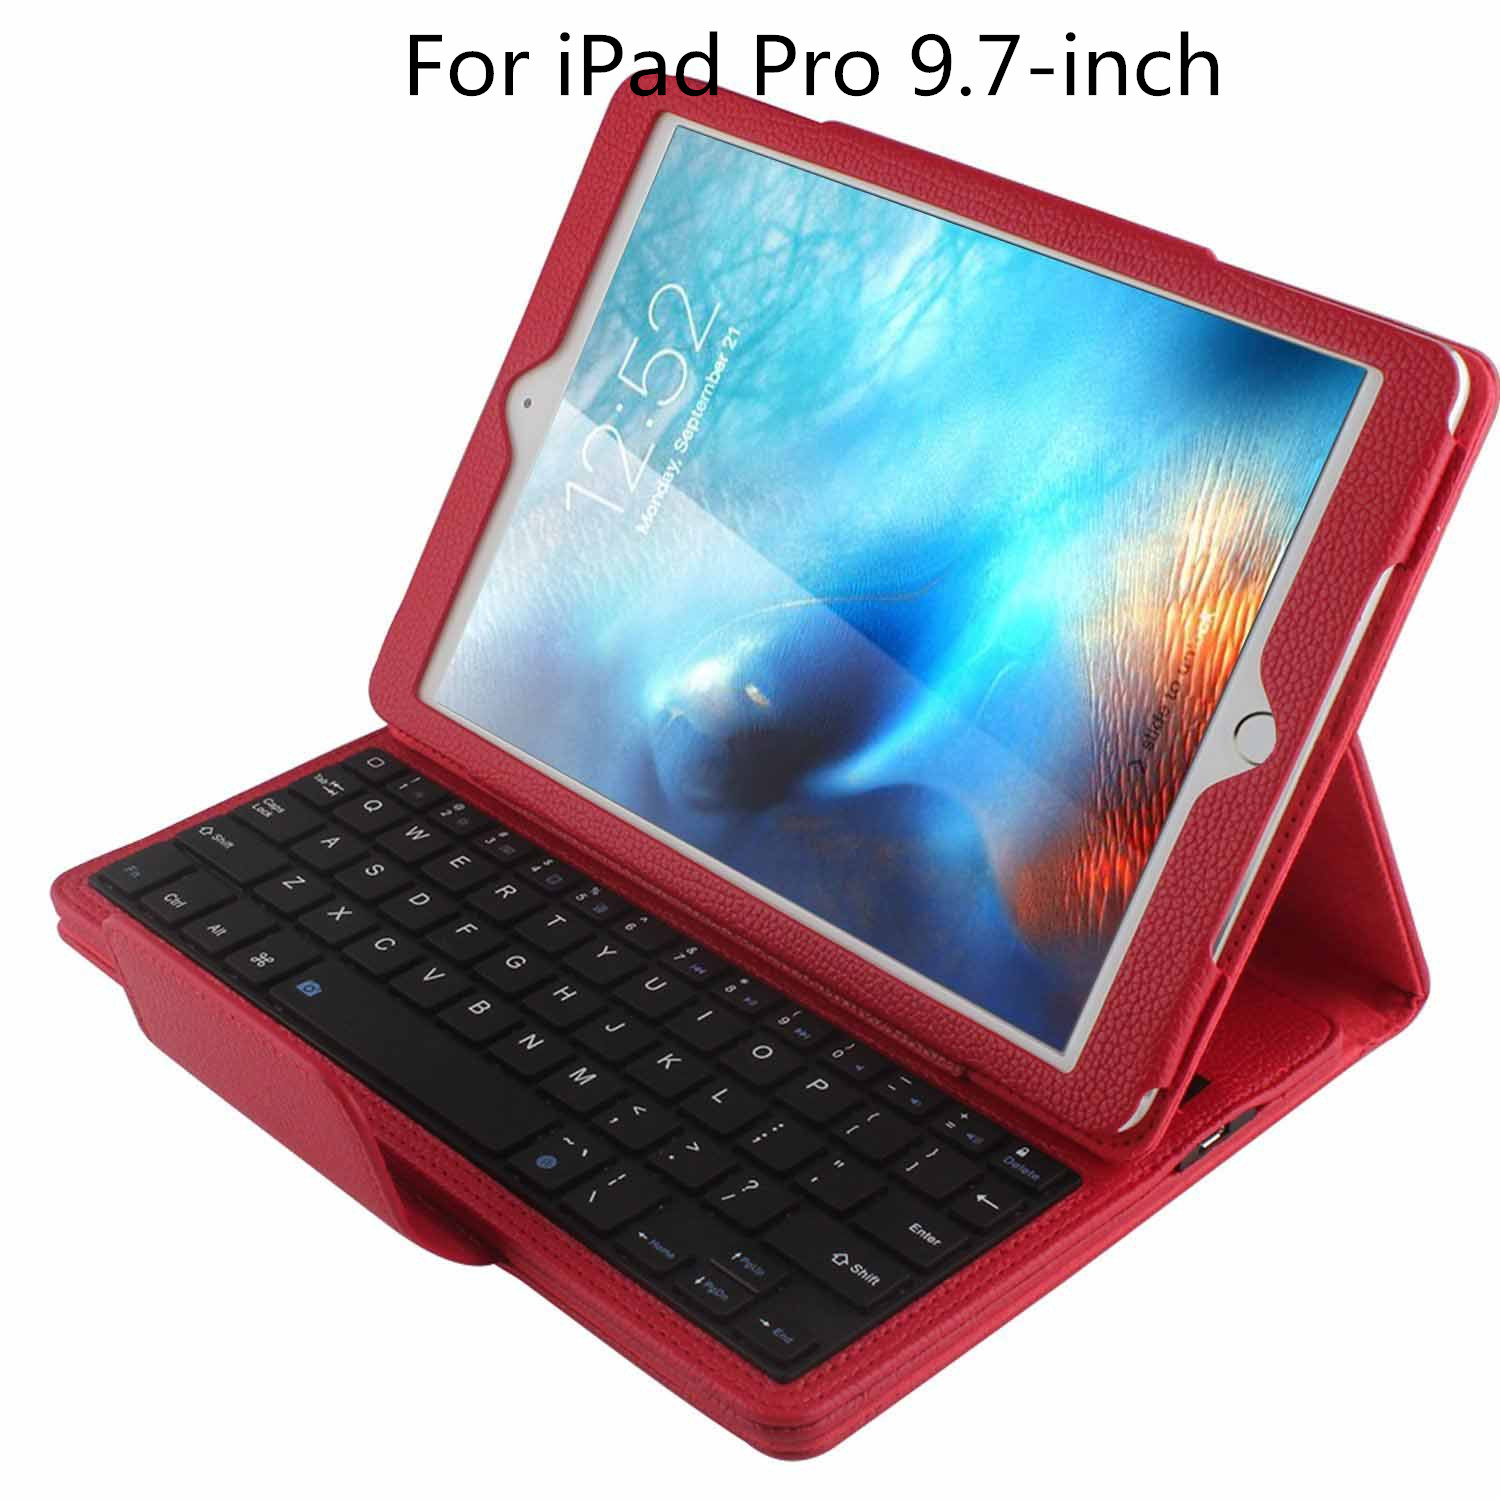 Magnetically Detachable Hidden Wireless Bluetooth Keyboard Folio PU Leather Case Smart Cover For Apple iPad Pro 9.7 Inch (2016)